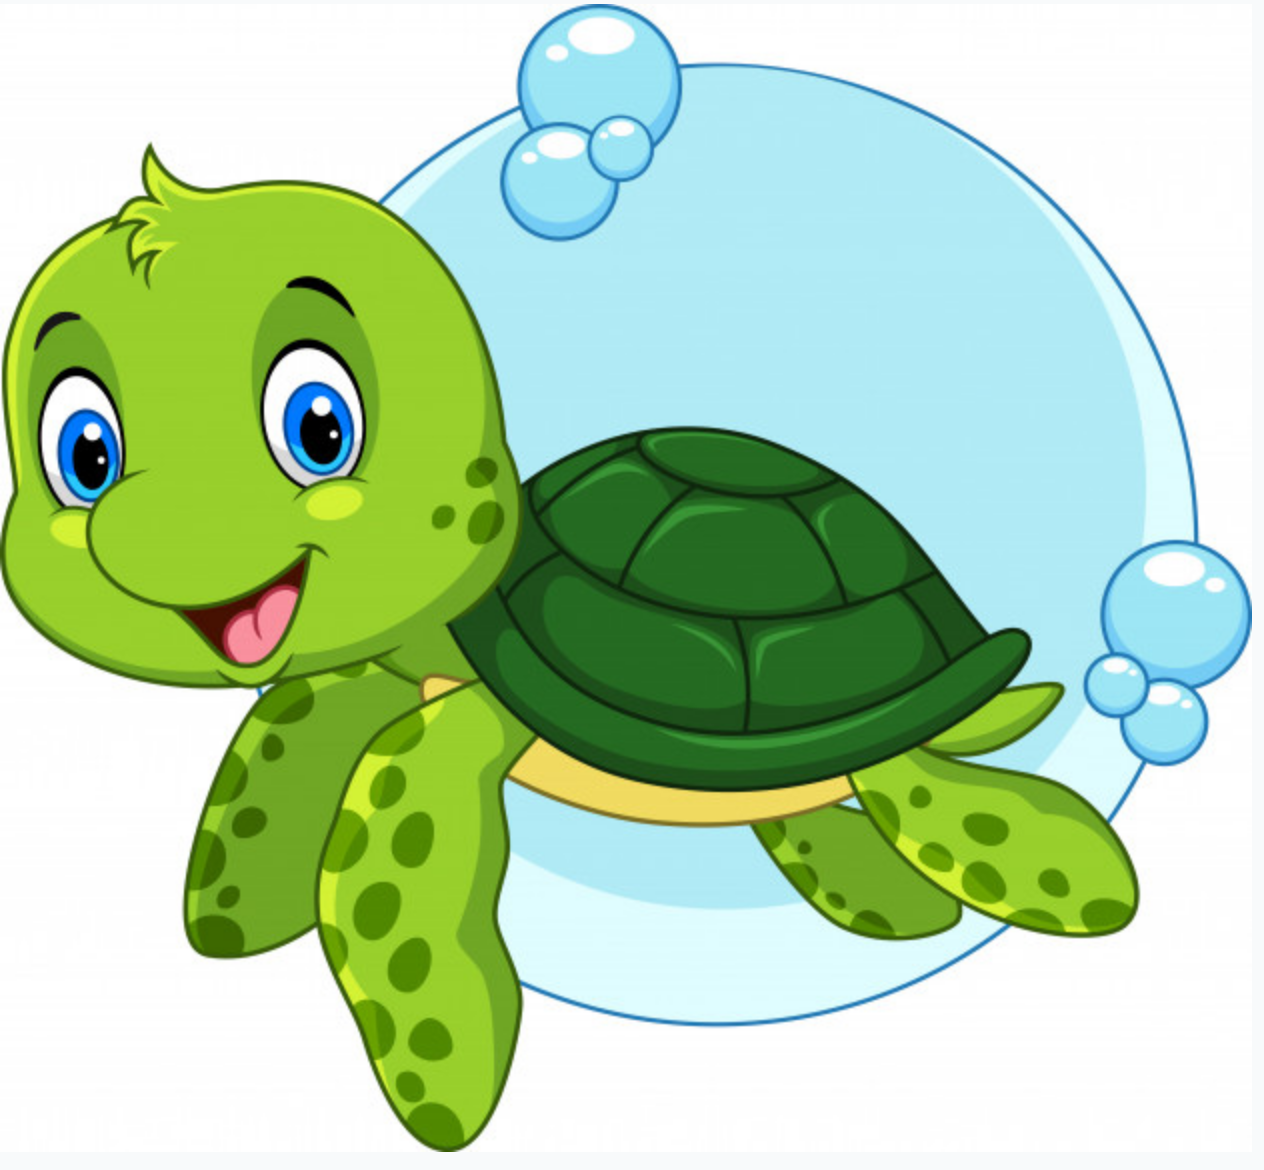 Malu the Honu - A Kid's Short Story